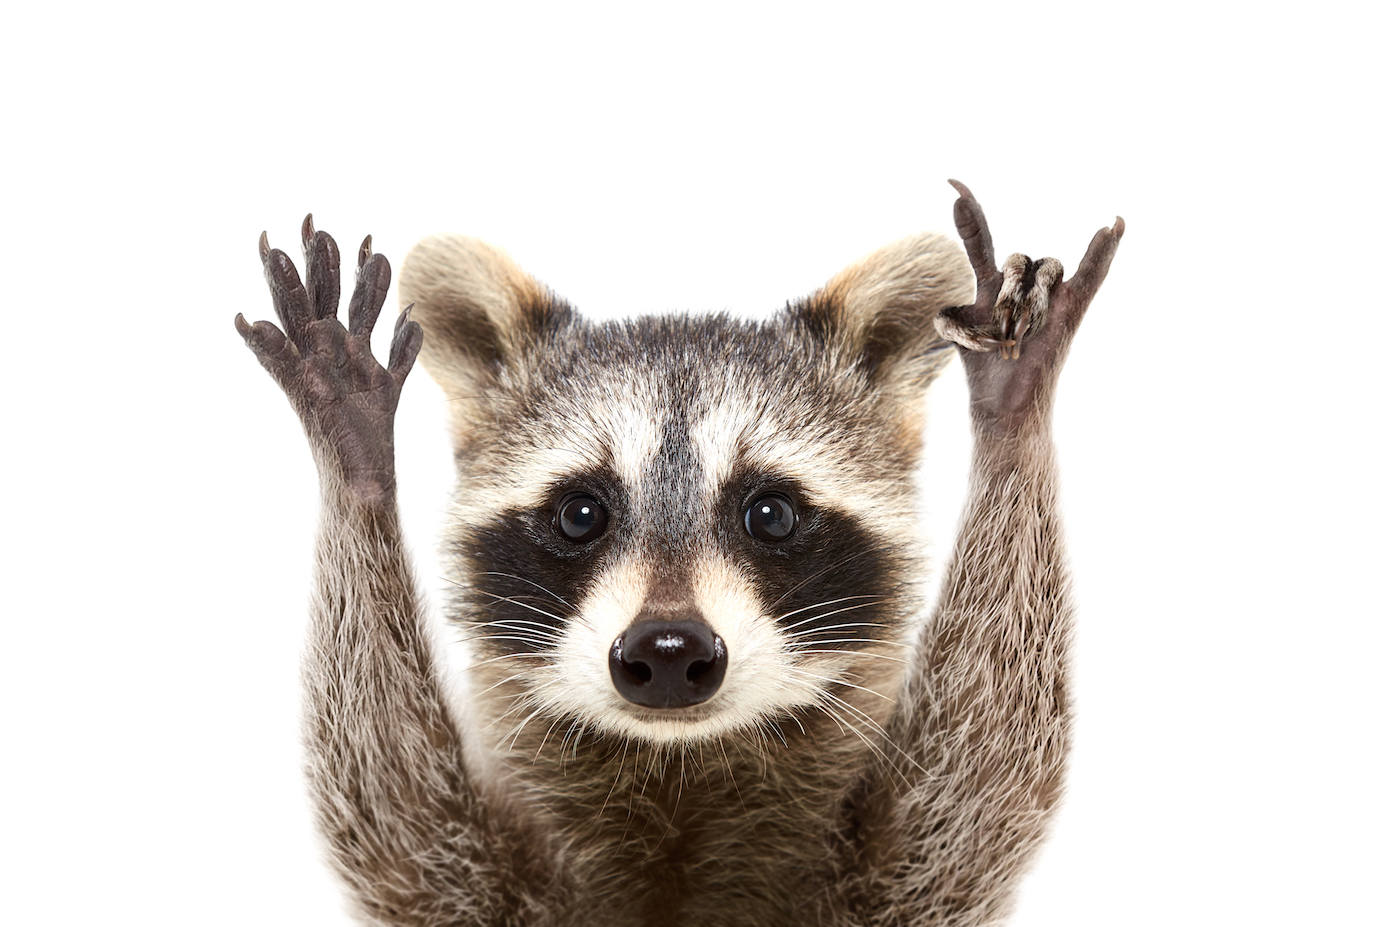 Racoon Raised Hands 1400x927